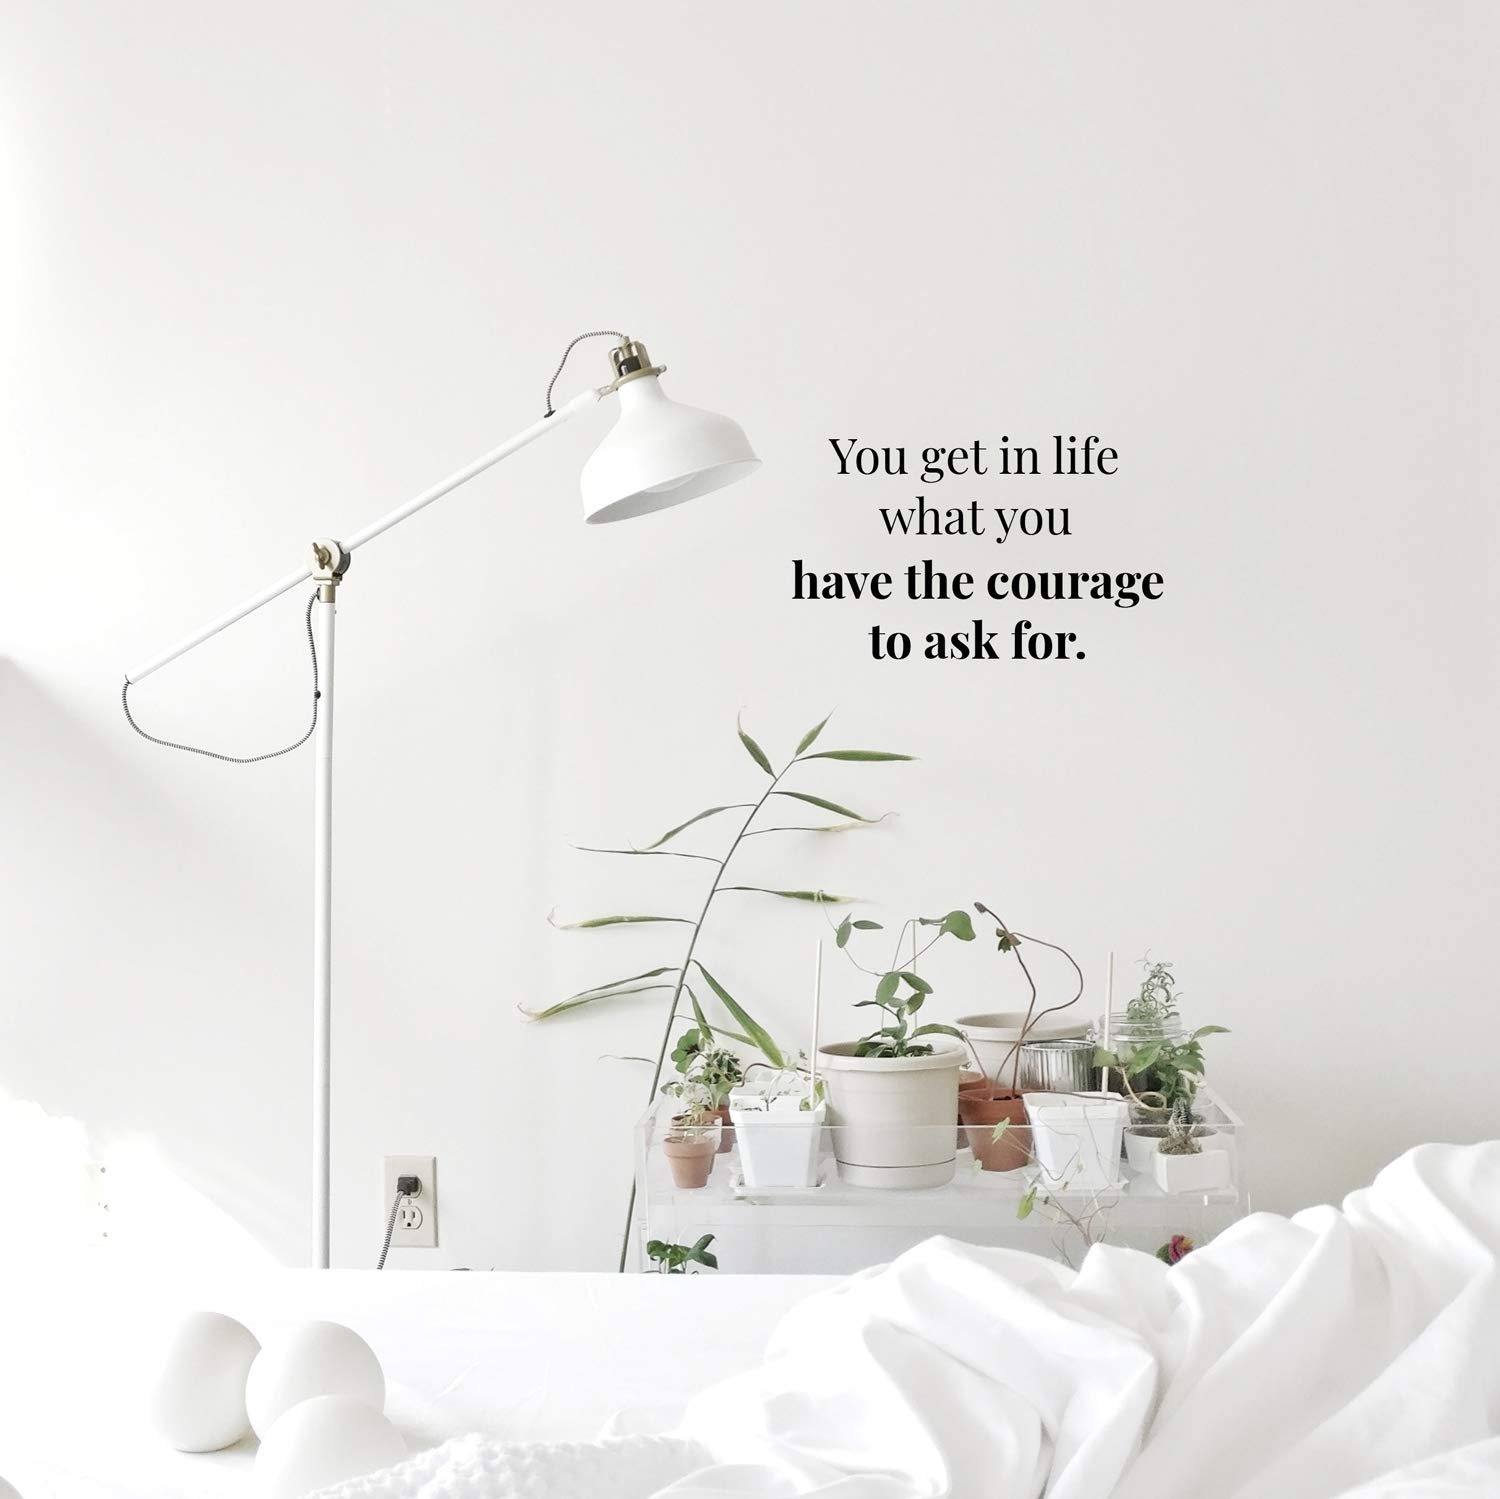 Exquisite English Quotes Wall Stickers Modern Fashion Wall Sticker For Baby Kids Rooms Decor Decoration Murals